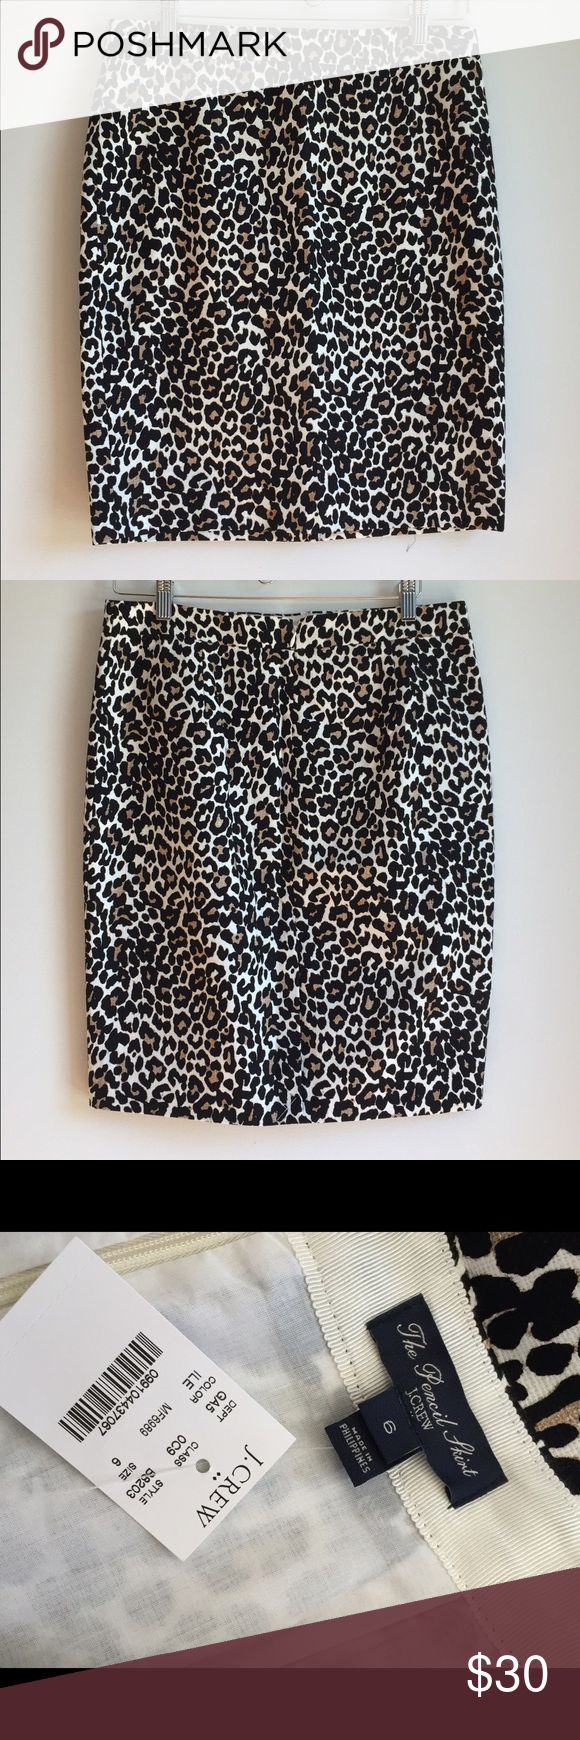 New with tags J Crew leopard print pencil skirt J Crew Factory leopard print pencil skirt, size 6.  New with tags.  Fantastic skirt, classic and beautiful.  Back zip, lined. J. Crew Skirts Pencil